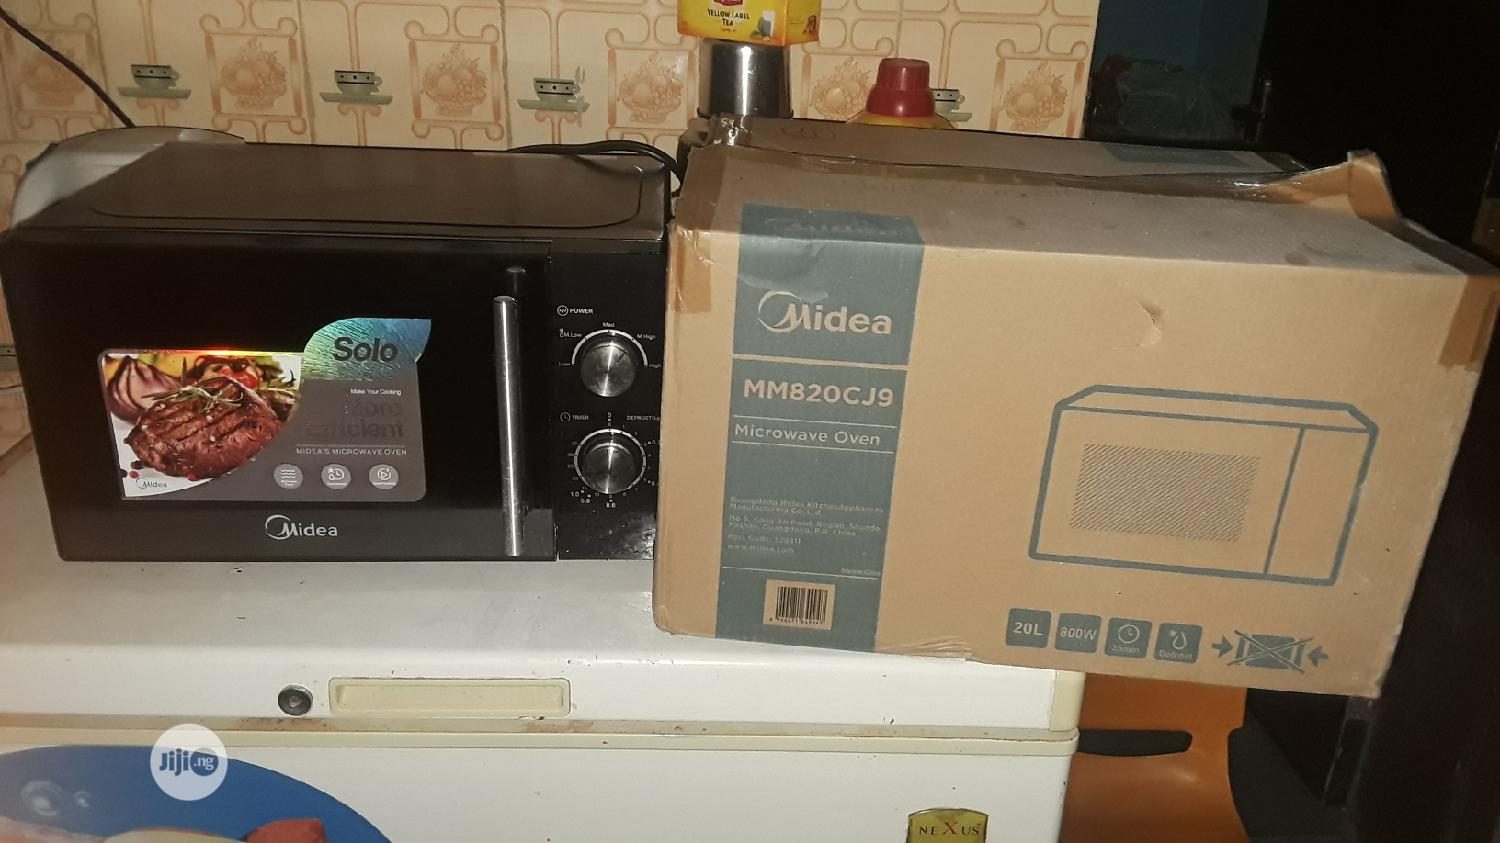 Archive: 20 Lits Midea Microwave Oven